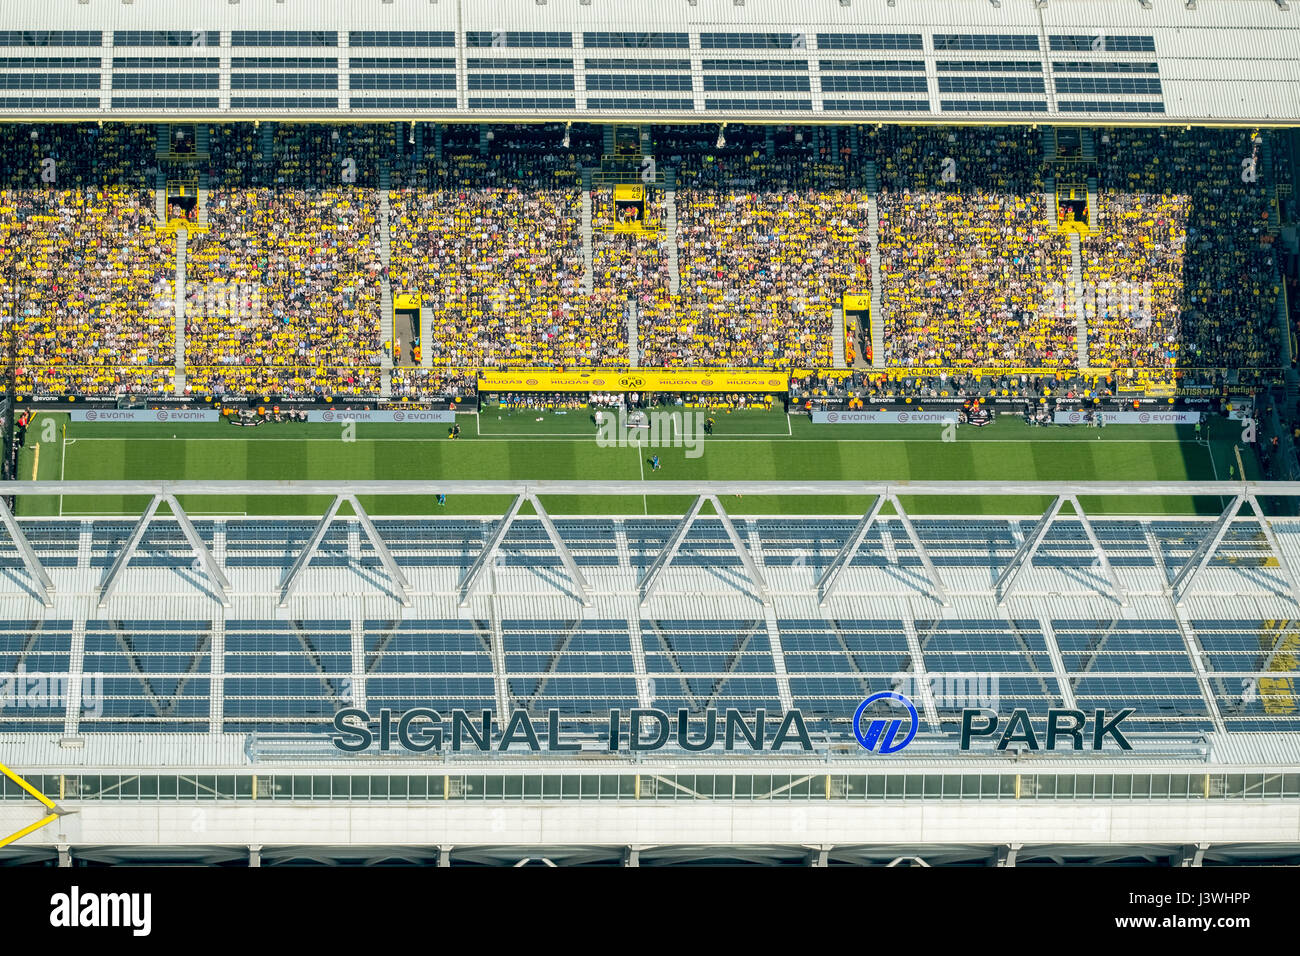 East stand with coach bank, view from airplane to BVB stadium, BVB against TSG Hoffenheim, Signal Iduna Park, BVB - Stock Image